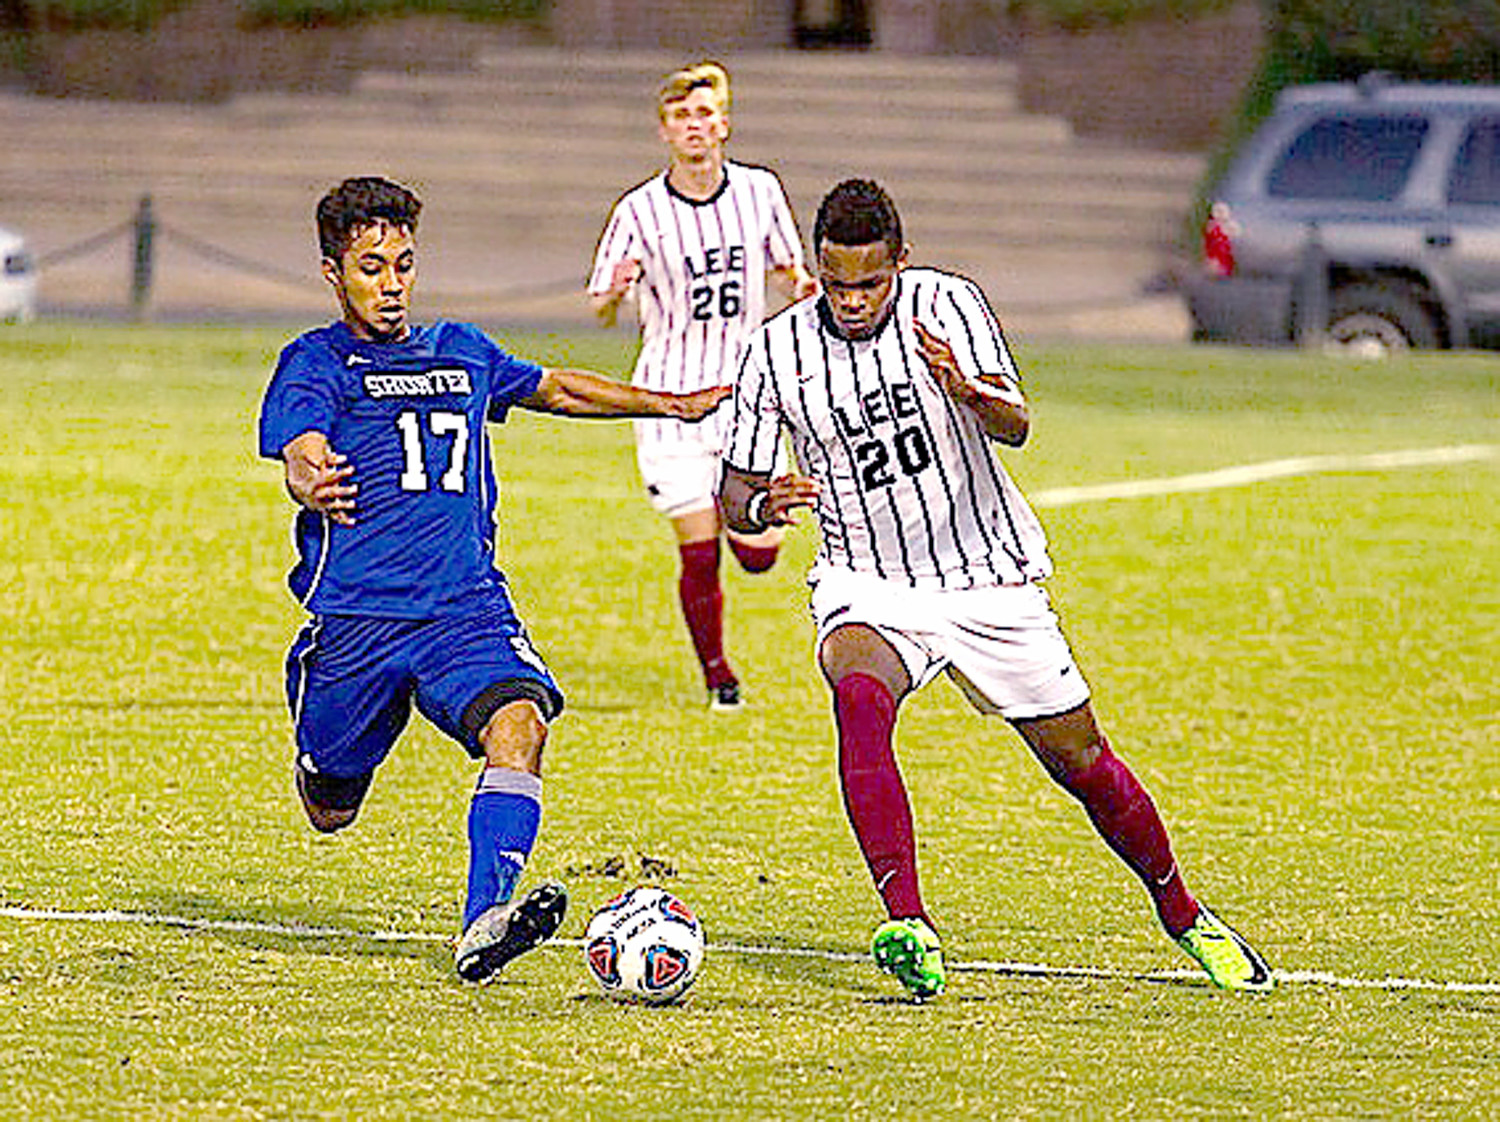 LEE'S Samaan Williams, shown here against Shorter University,  scored his second goal of the season in the Flames' loss to Spring Hill College Thursday, in Mobile, Ala..